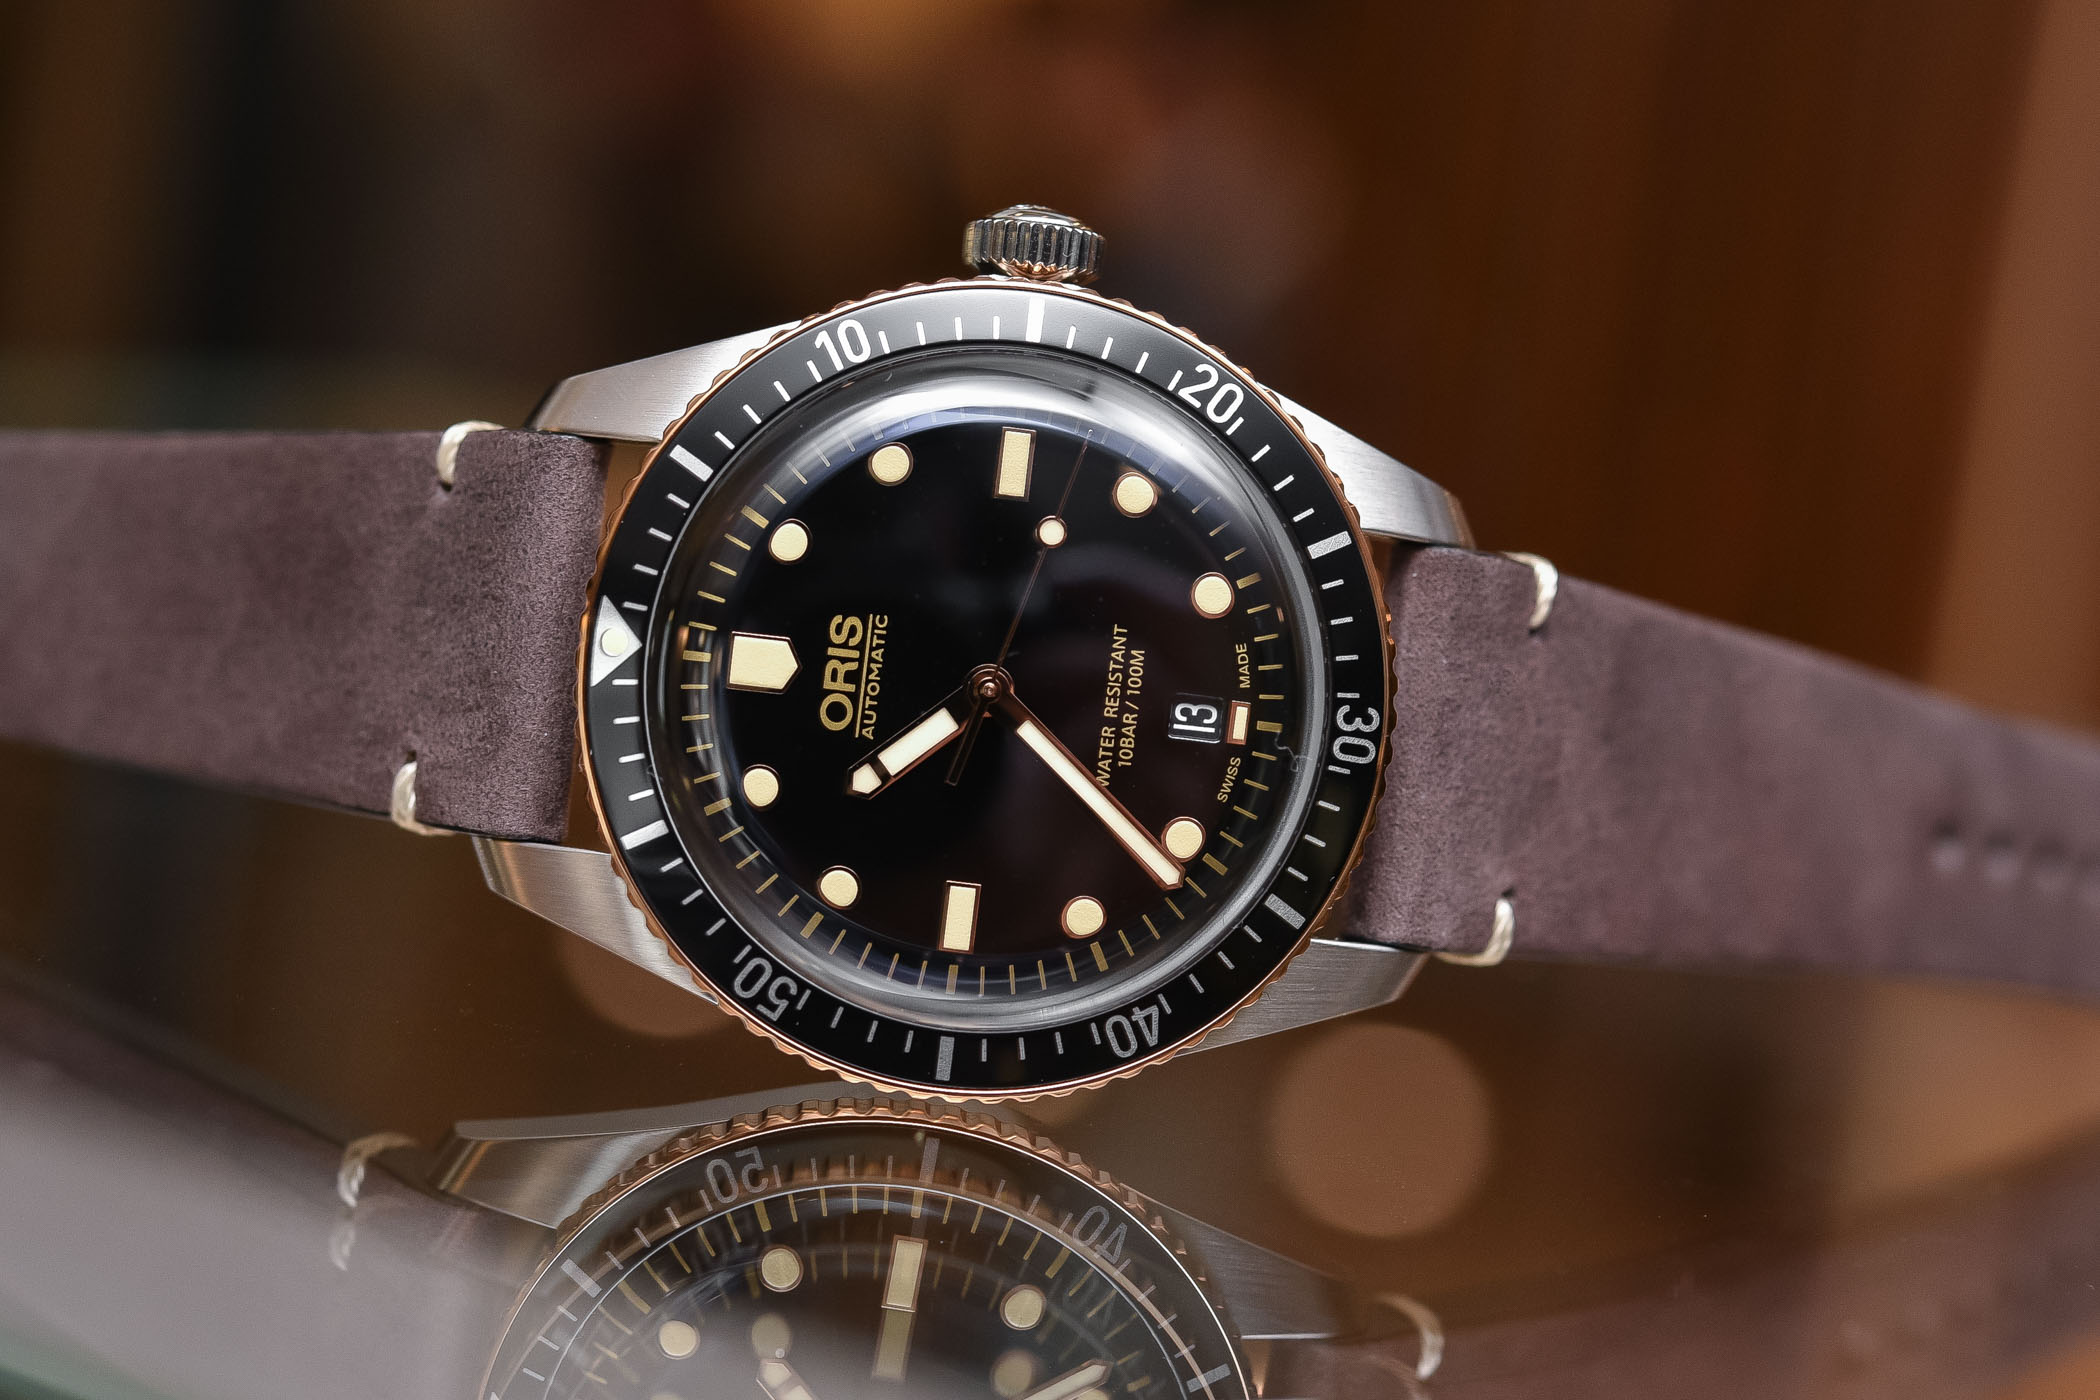 Best Dive Watches Baselworld 2018 - ORIS DIVERS SIXTY FIVE STEEL-AND-BRONZE